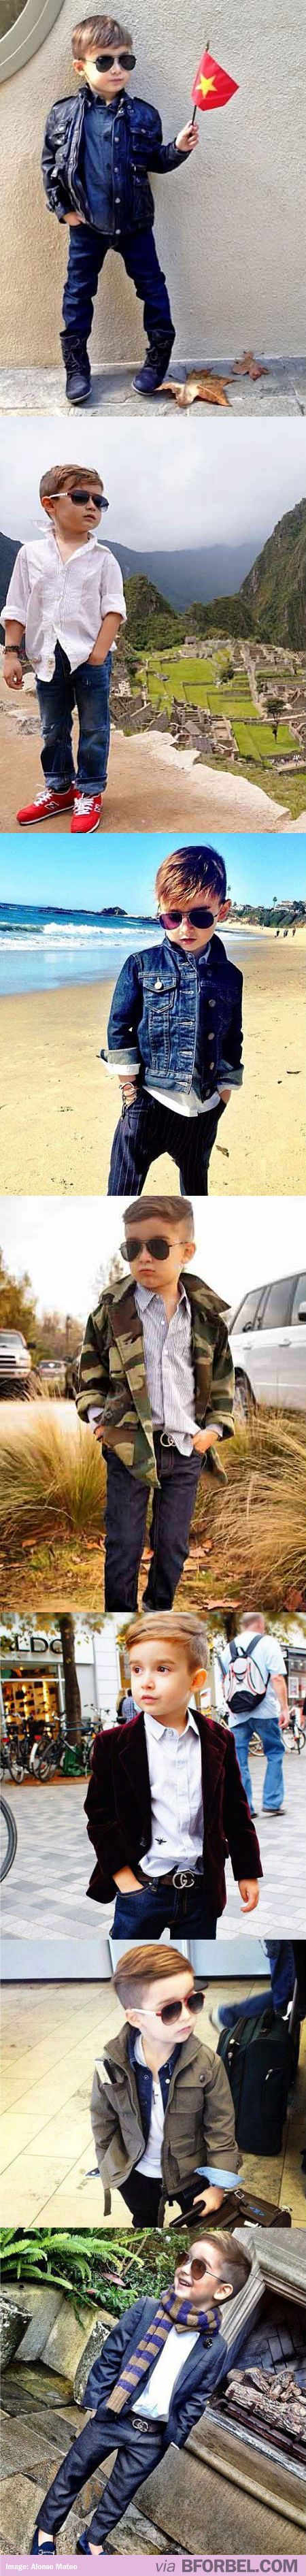 The most stylish little boy to ever walk this earth. Kid's got swag. #fashion #ootd #style